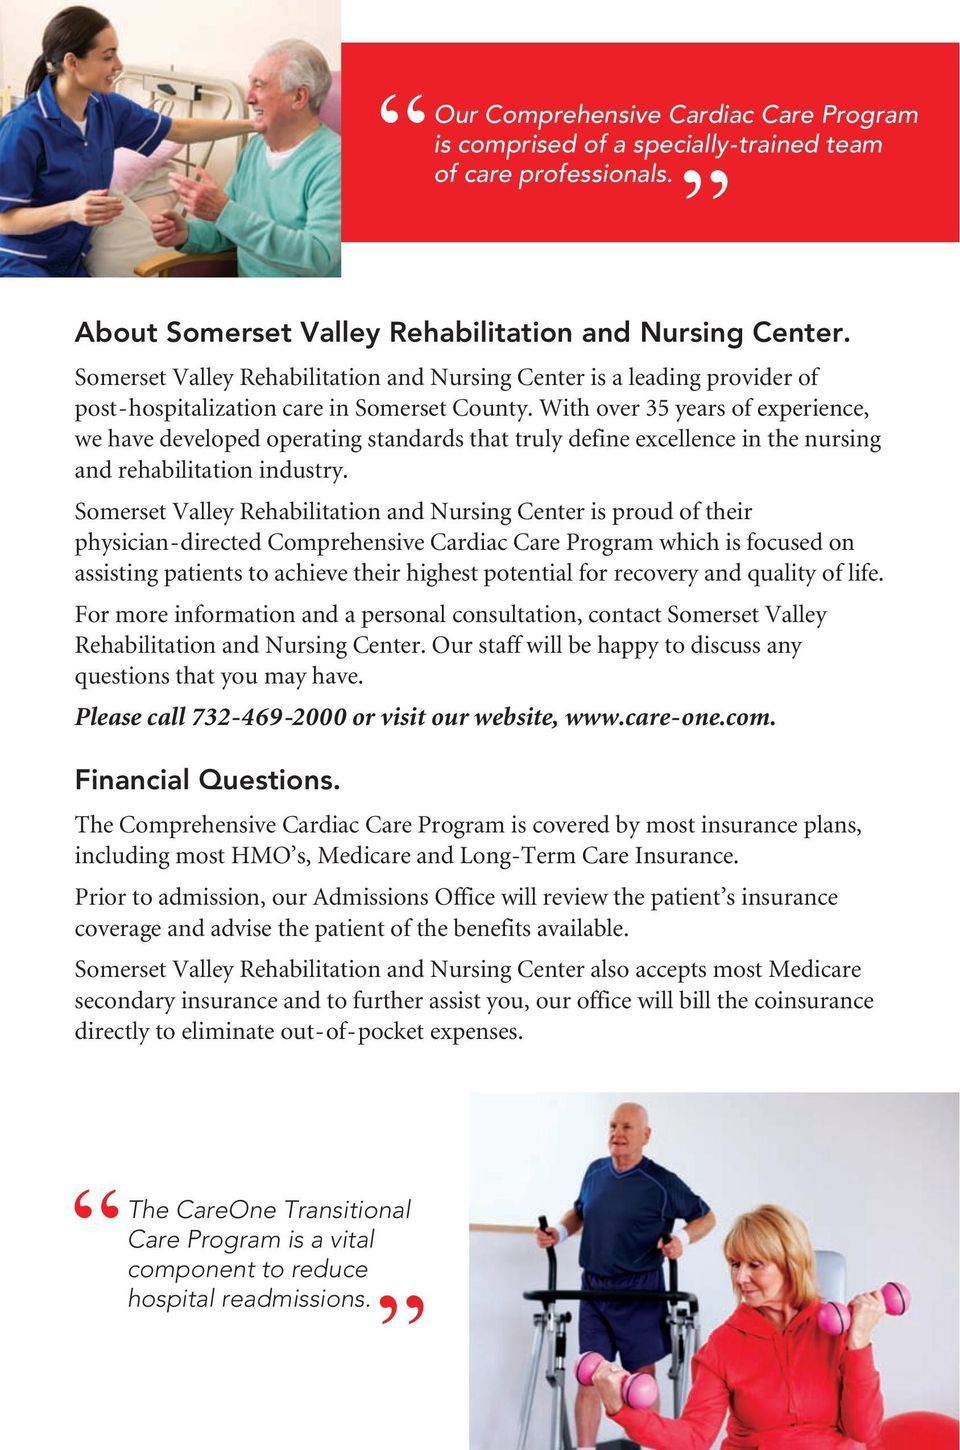 With over 35 years of experience, we have developed operating standards that truly define excellence in the nursing and rehabilitation industry.